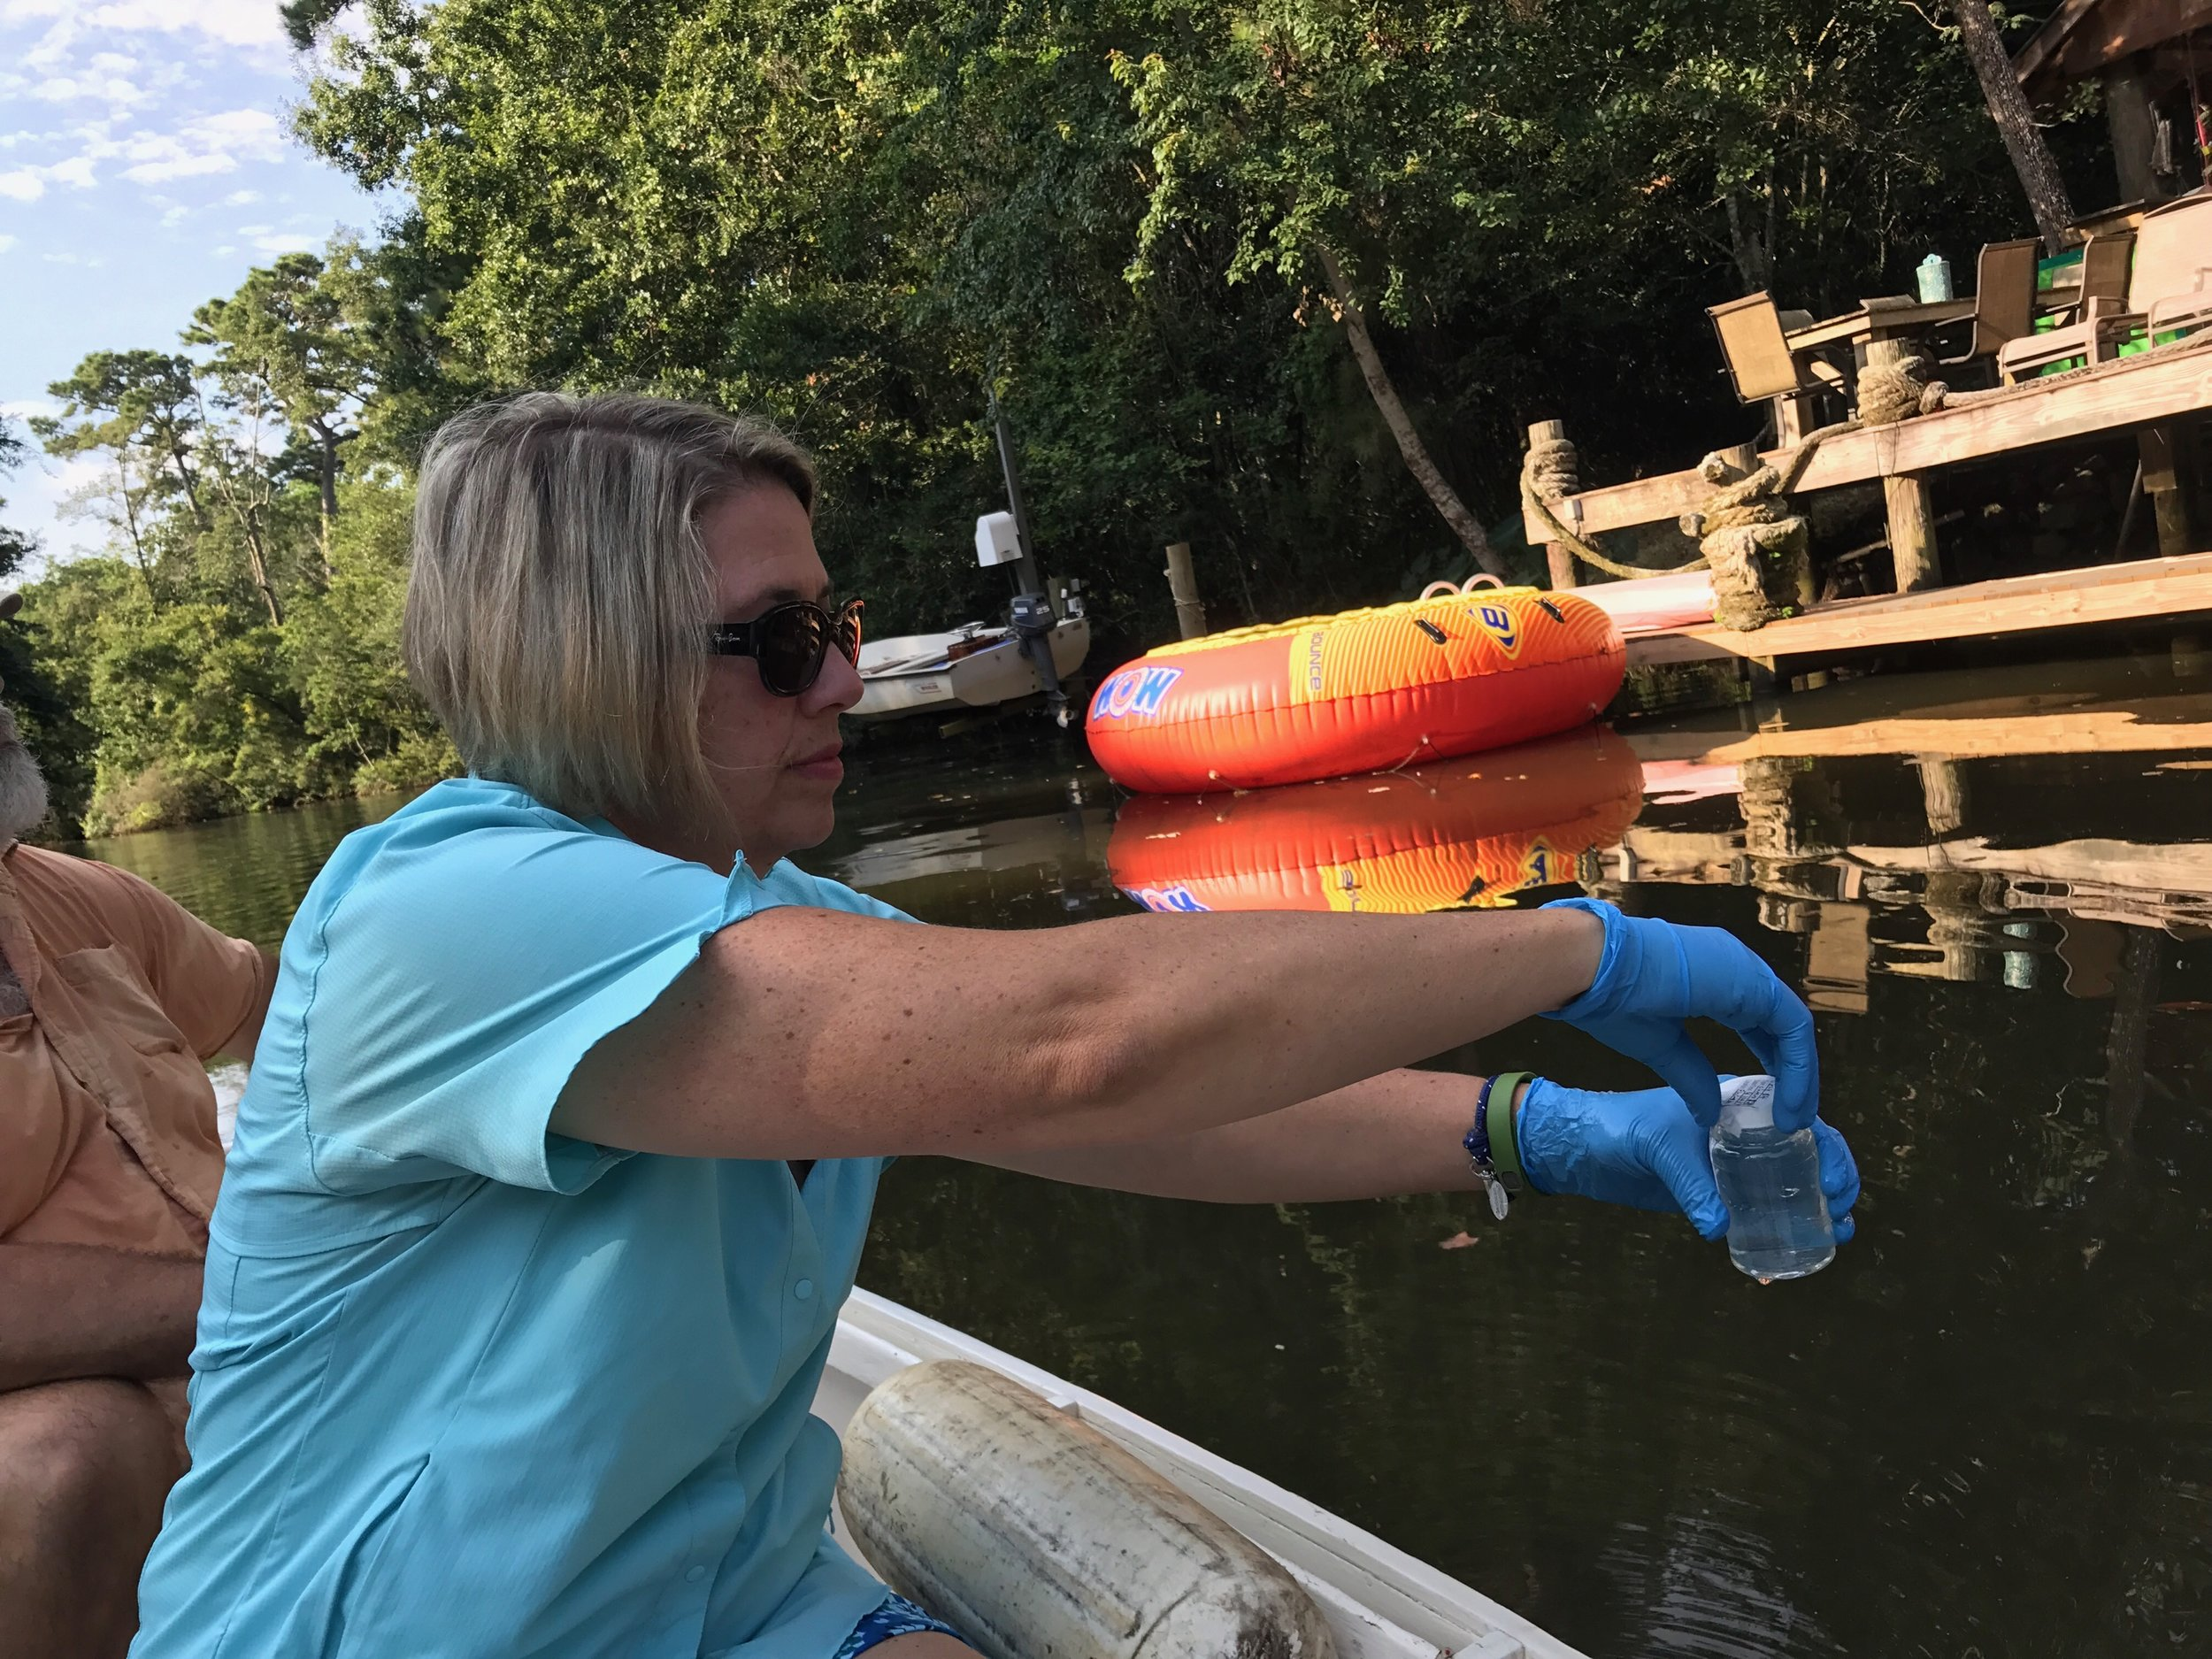 Executive Director Casi (kc) Callaway tests bacteria levels of Fly Creek following a sewage spill in August 2017.